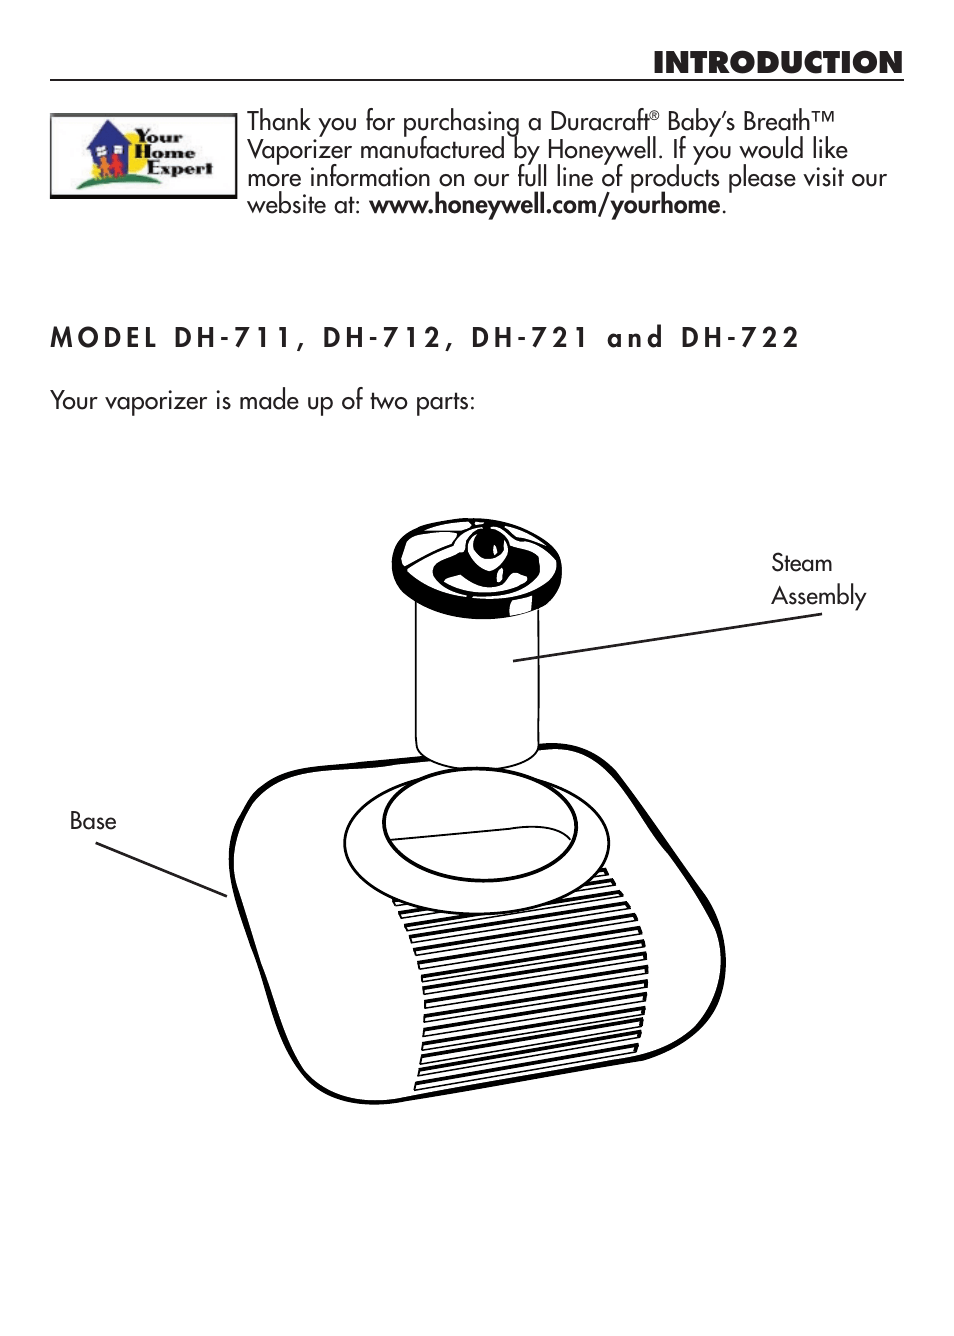 hight resolution of introduction duracraft baby s breath vaporizer dh 711 user manual page 3 11